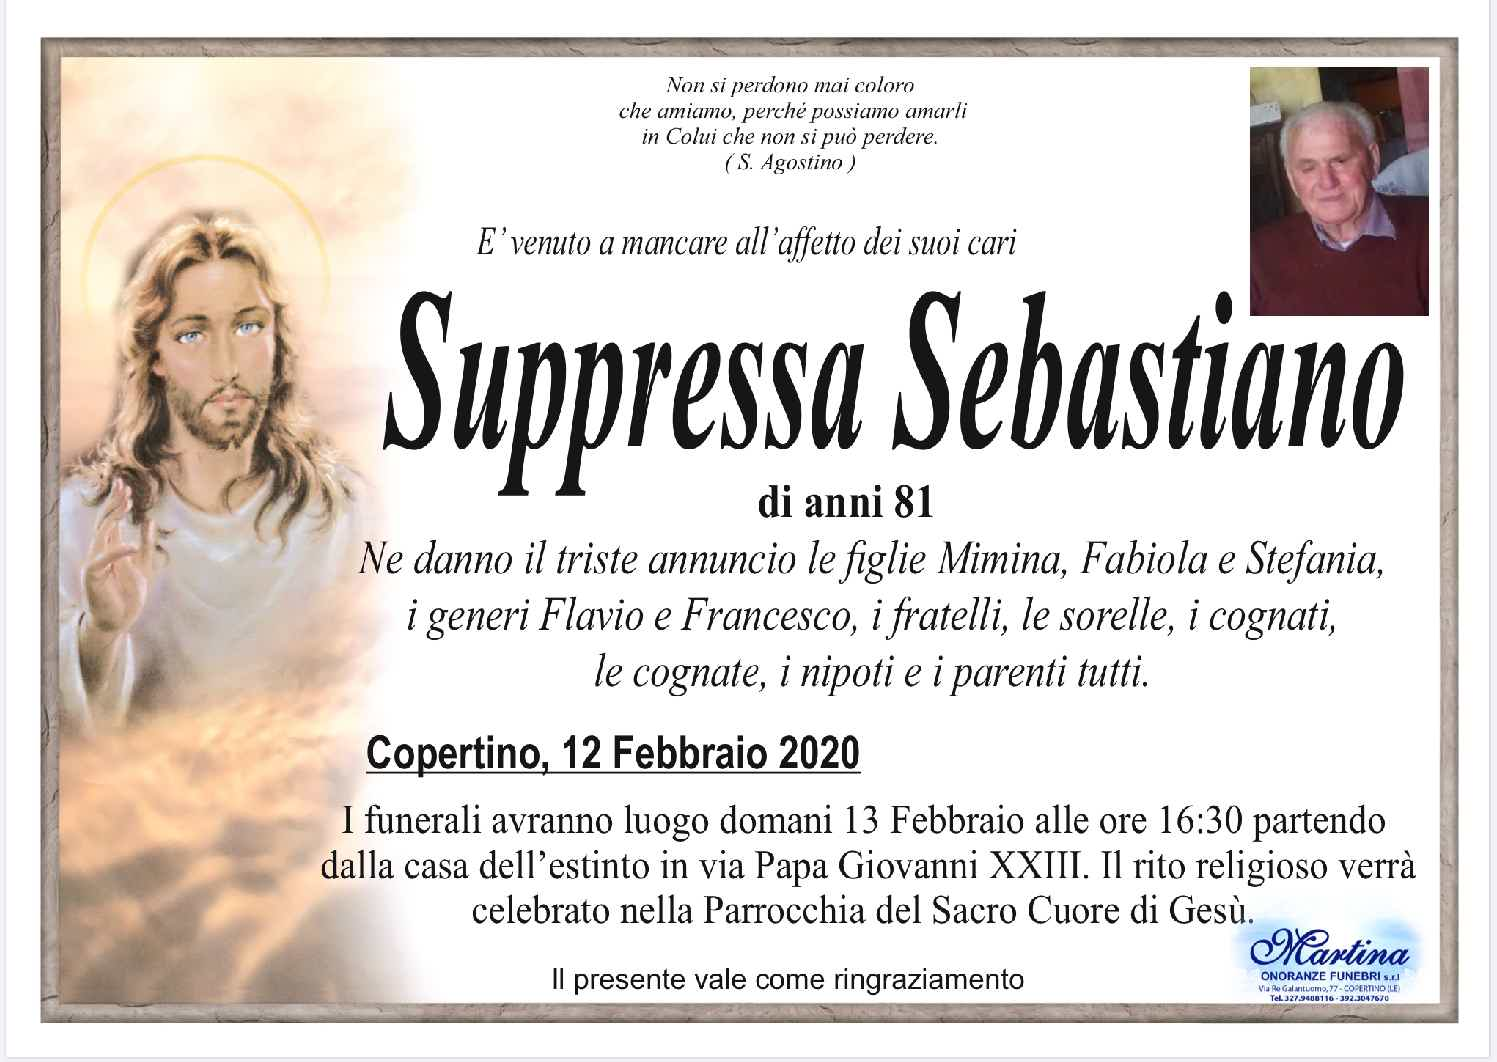 Sebastiano Francesco Suppressa